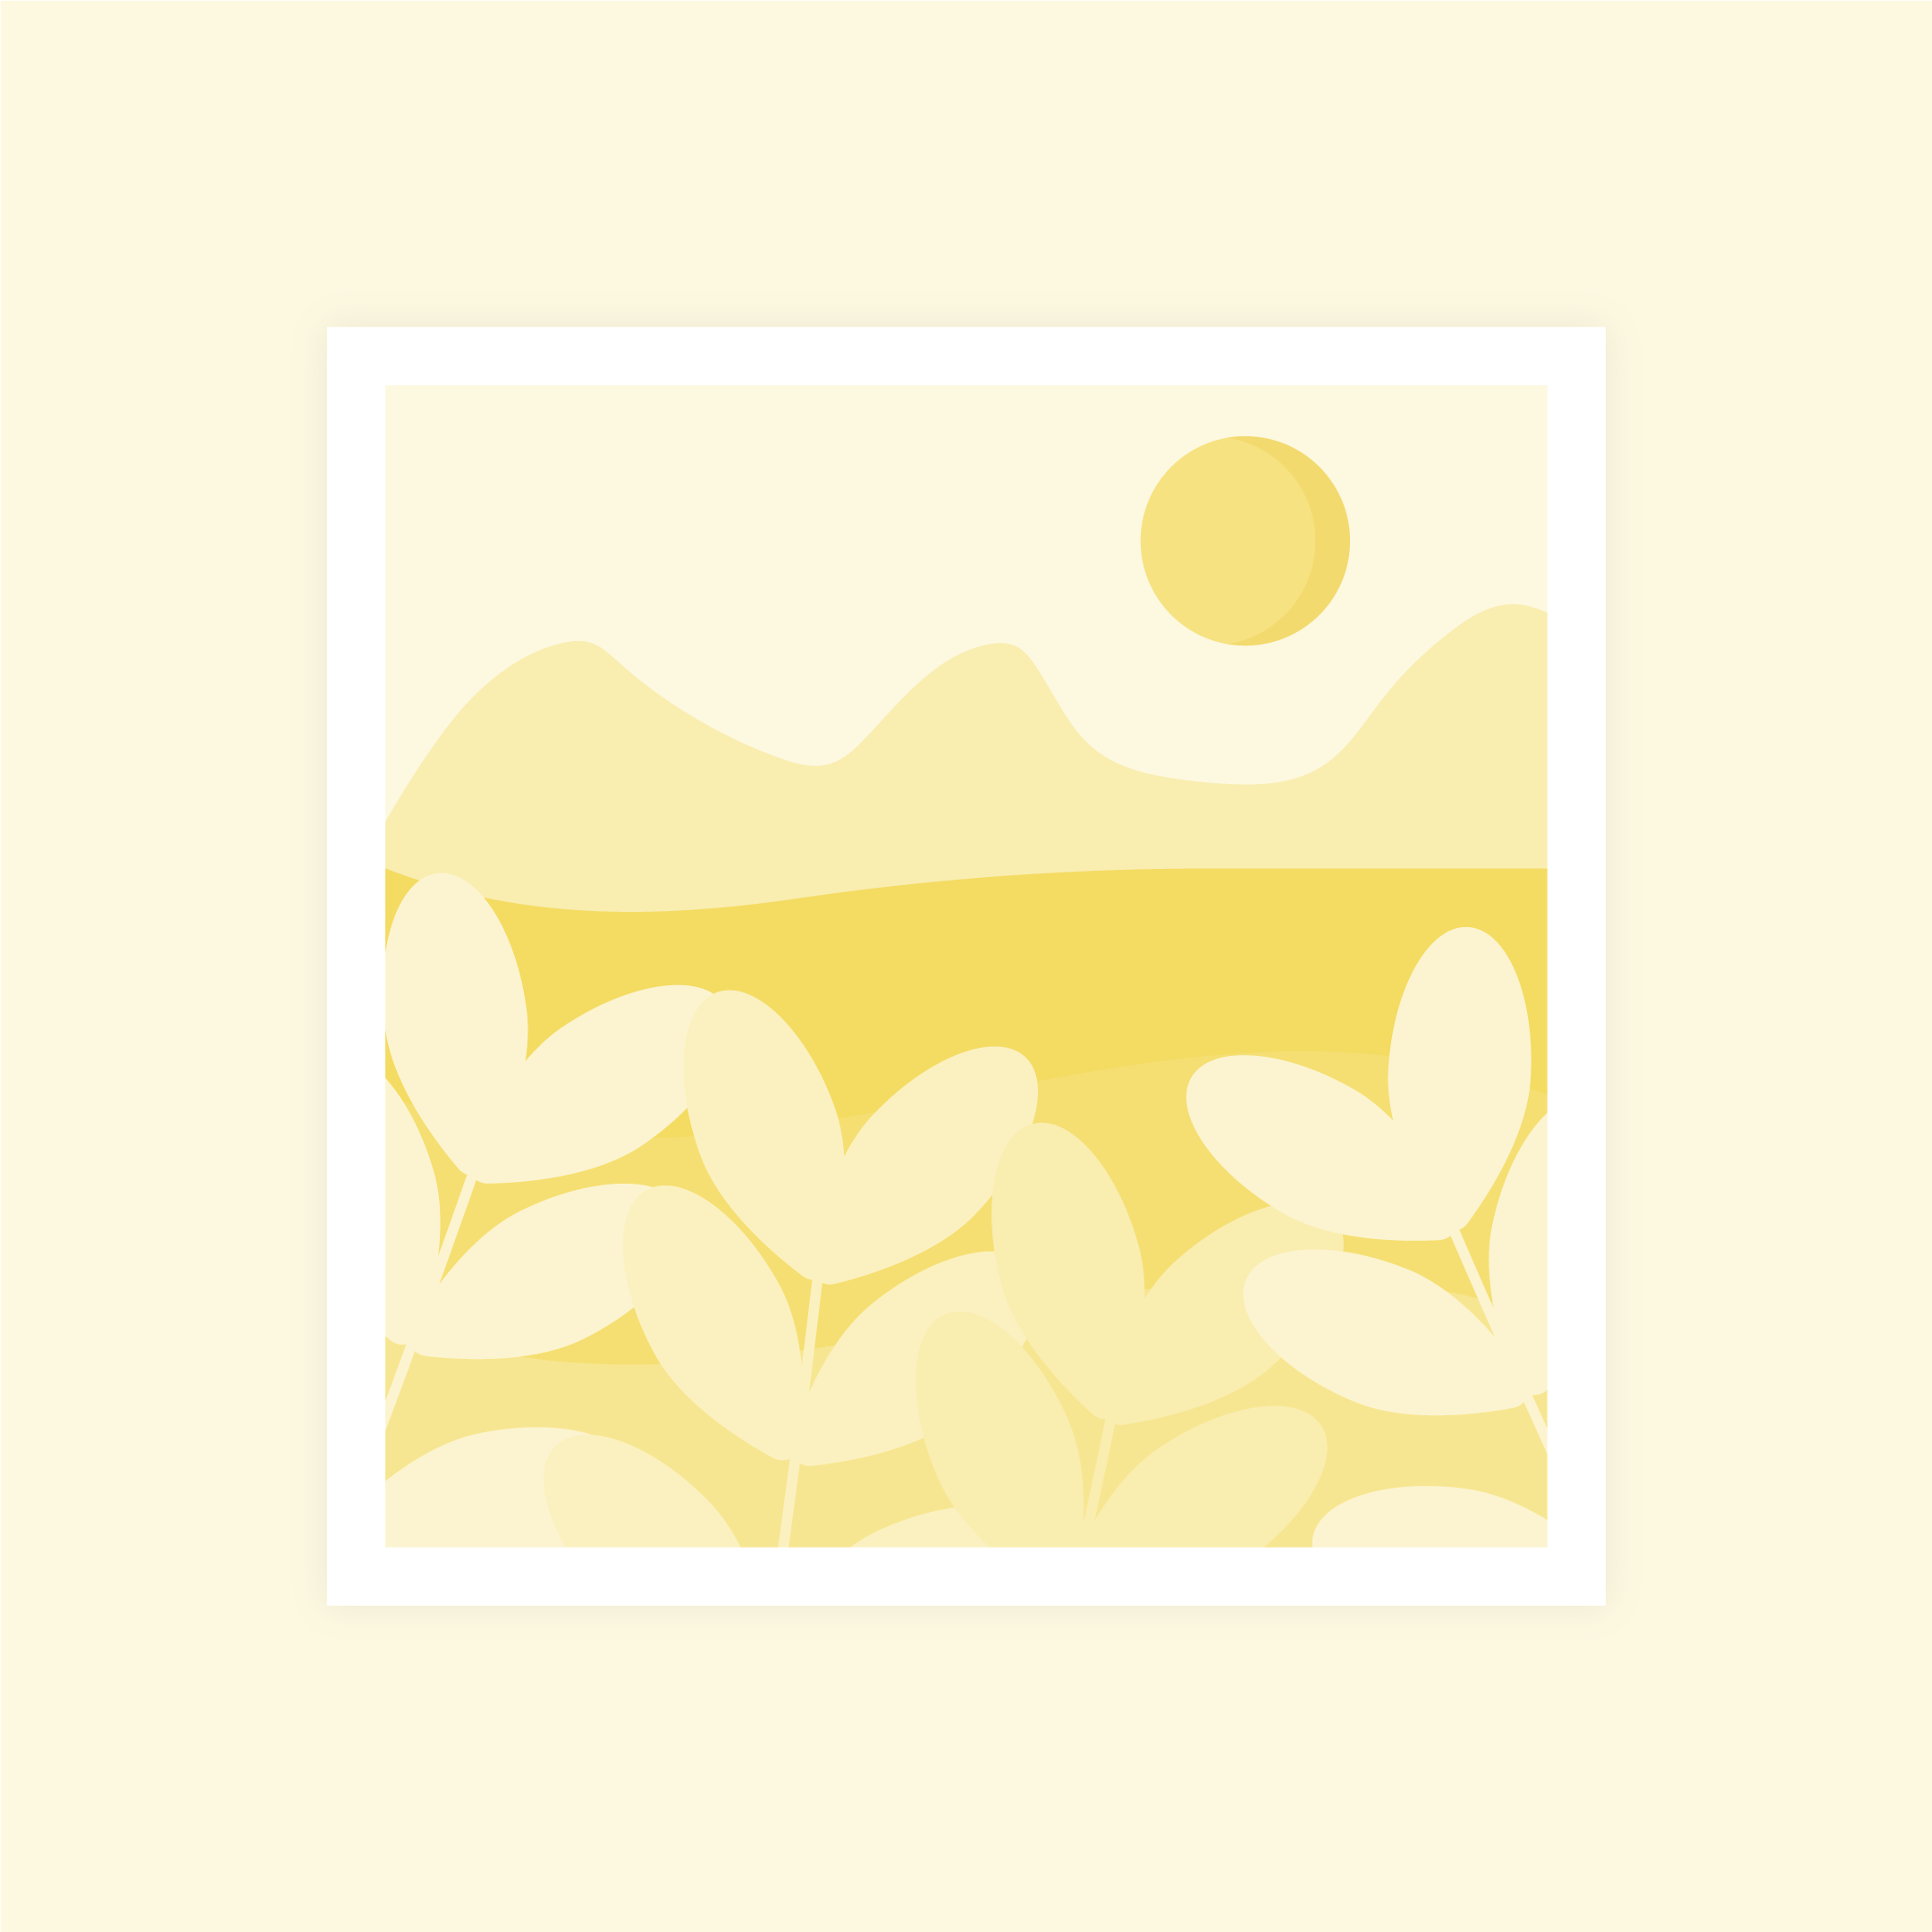 Vector illustration of a yellow monochromatic abstract landscape with a sun in flat design style